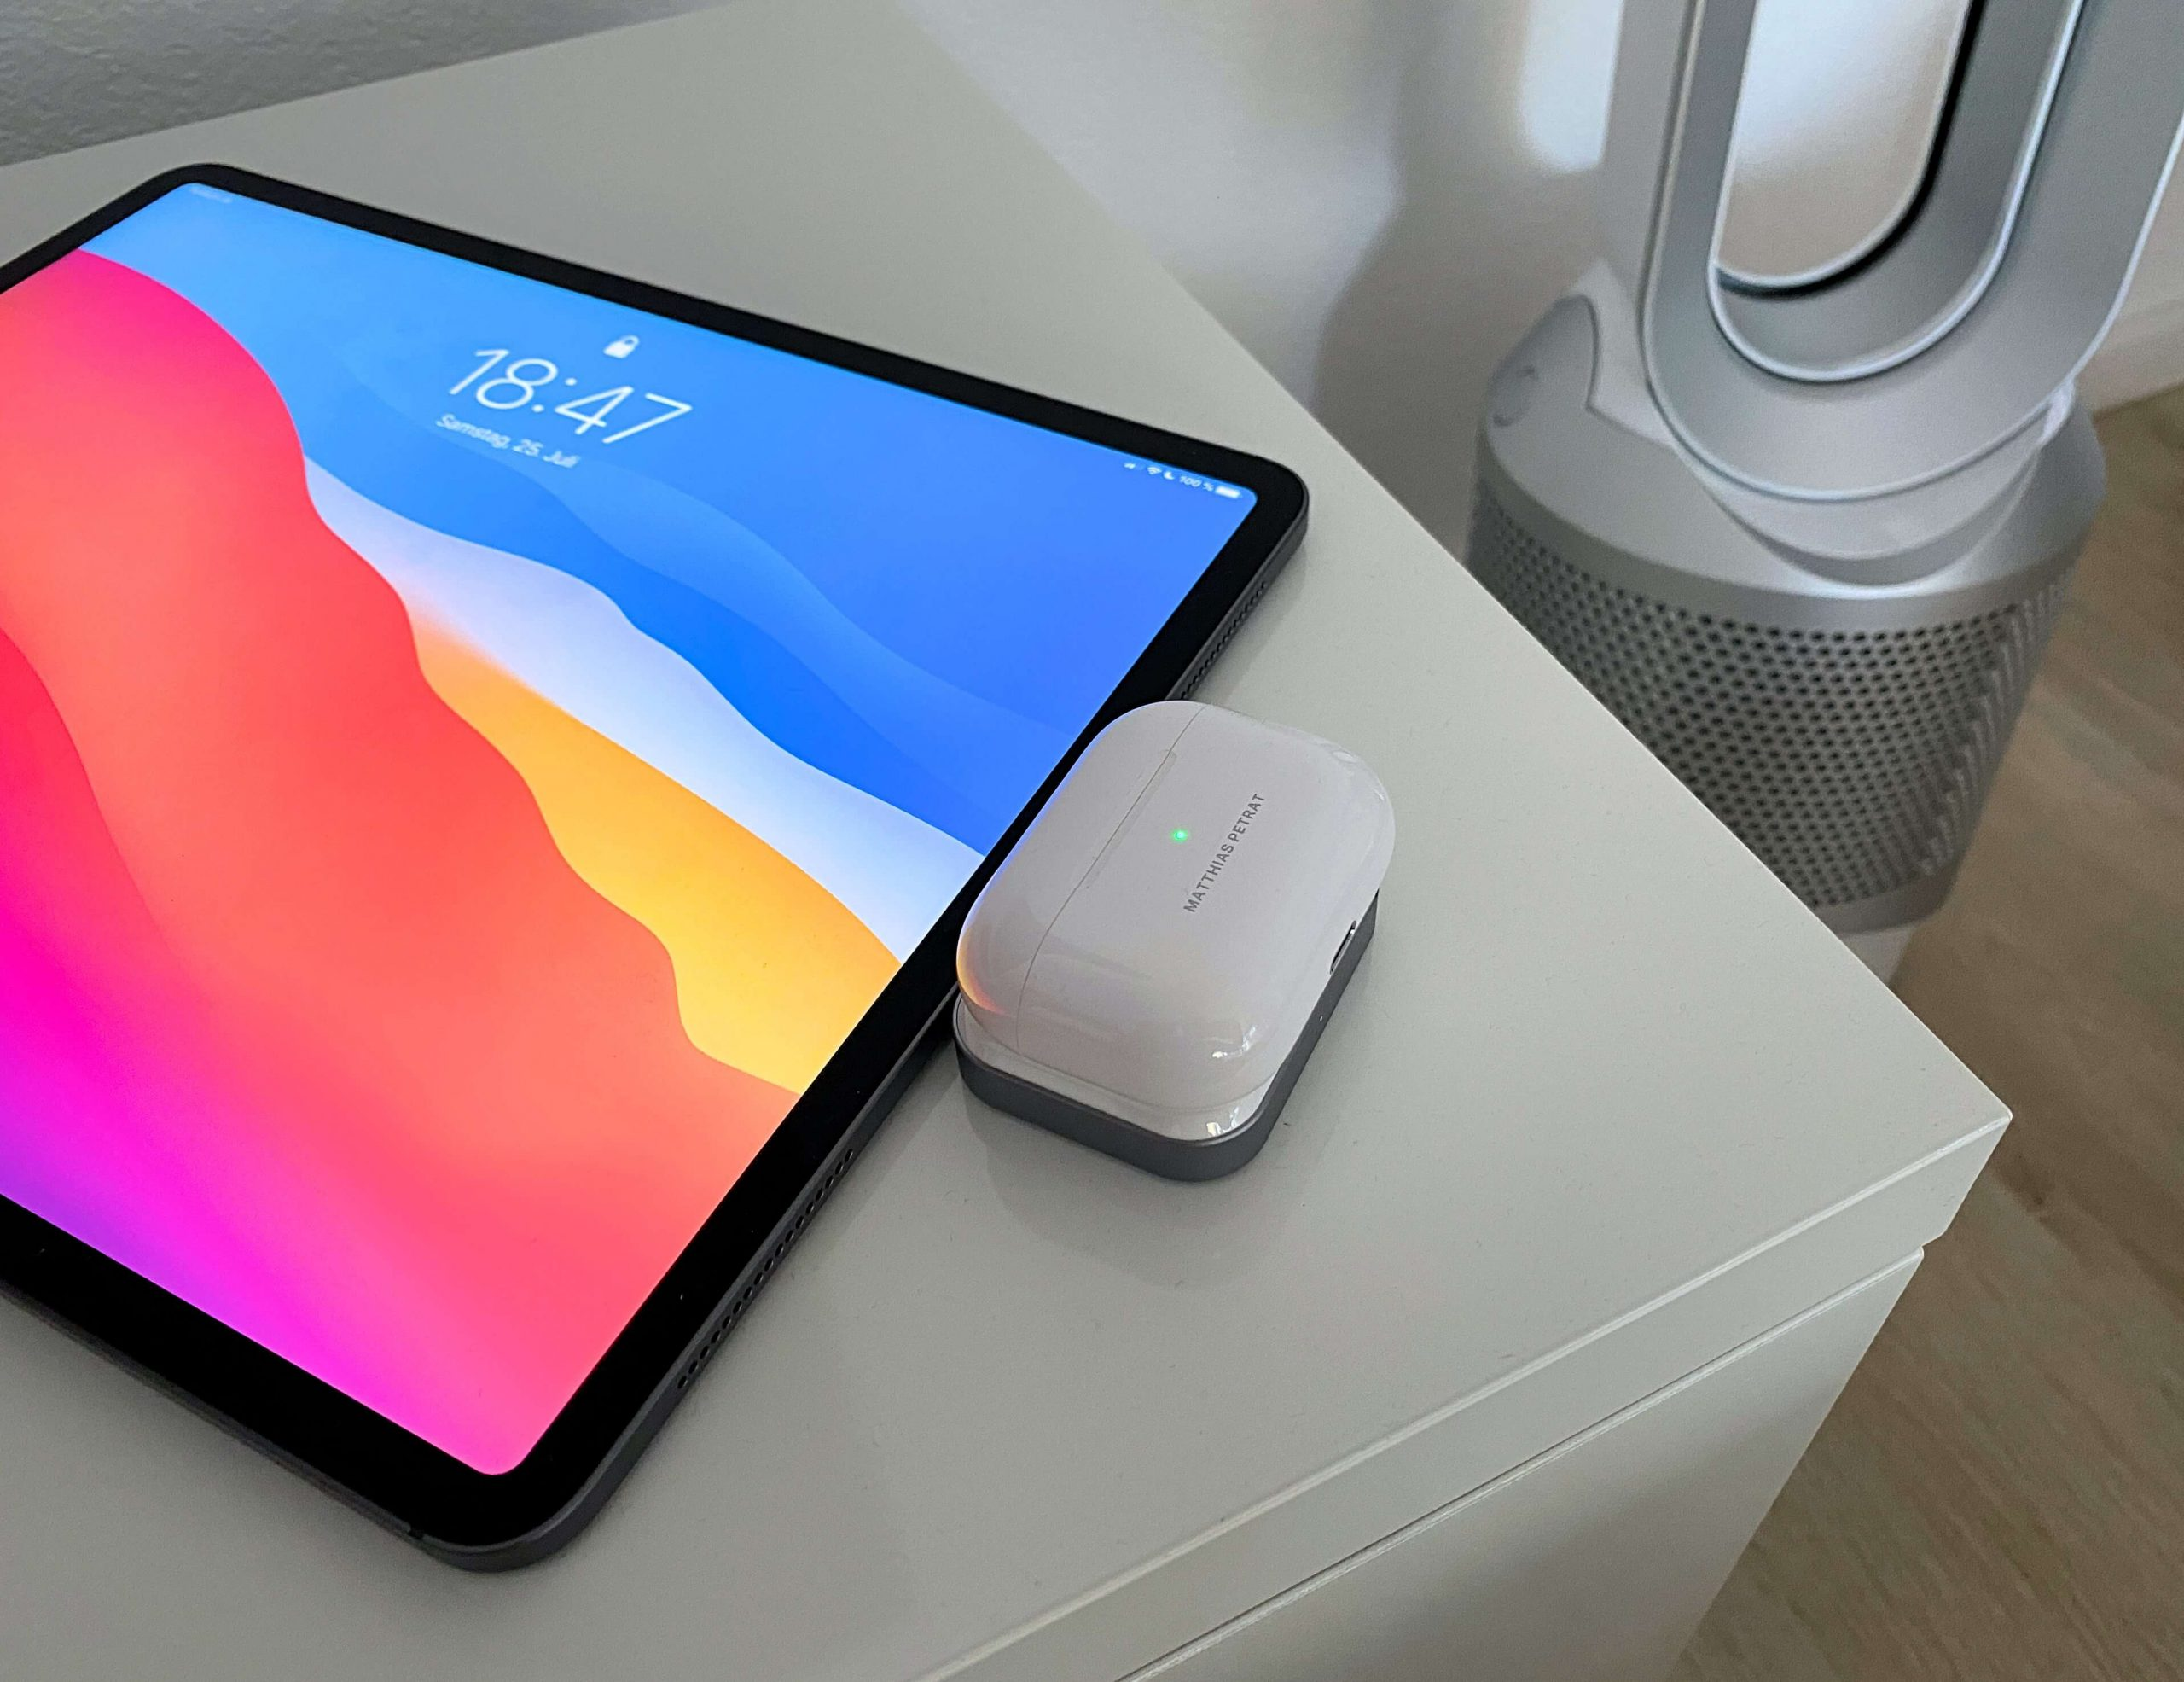 AirPods-Charger-von-Satechi-ohne-Kabel-via-USB-C-laden6-scaled AirPods Charger von Satechi - ohne Kabel via USB-C laden